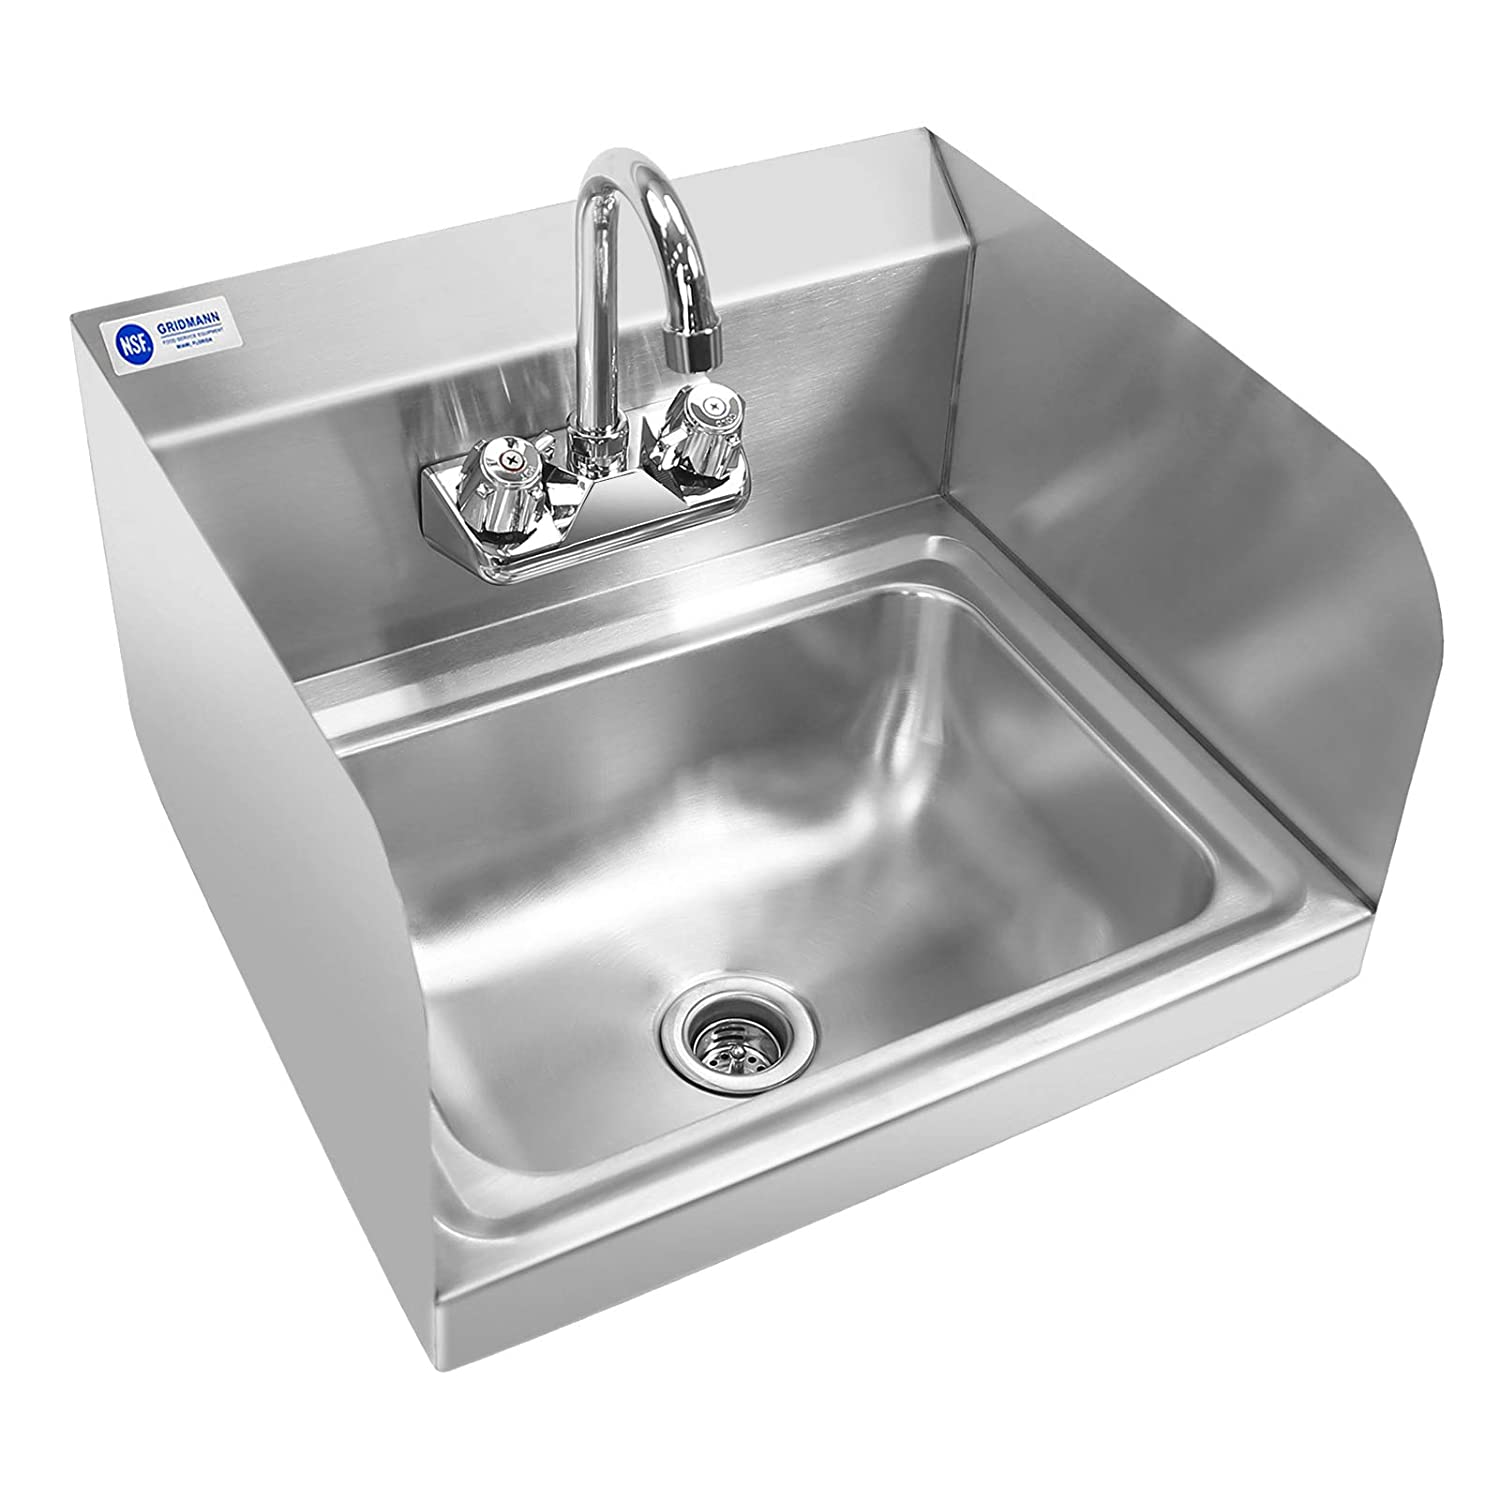 Image of Commercial Sinks GRIDMANN Commercial NSF Stainless Steel Sink with Faucet & Sidesplashes - Wall Mount Hand Washing Basin